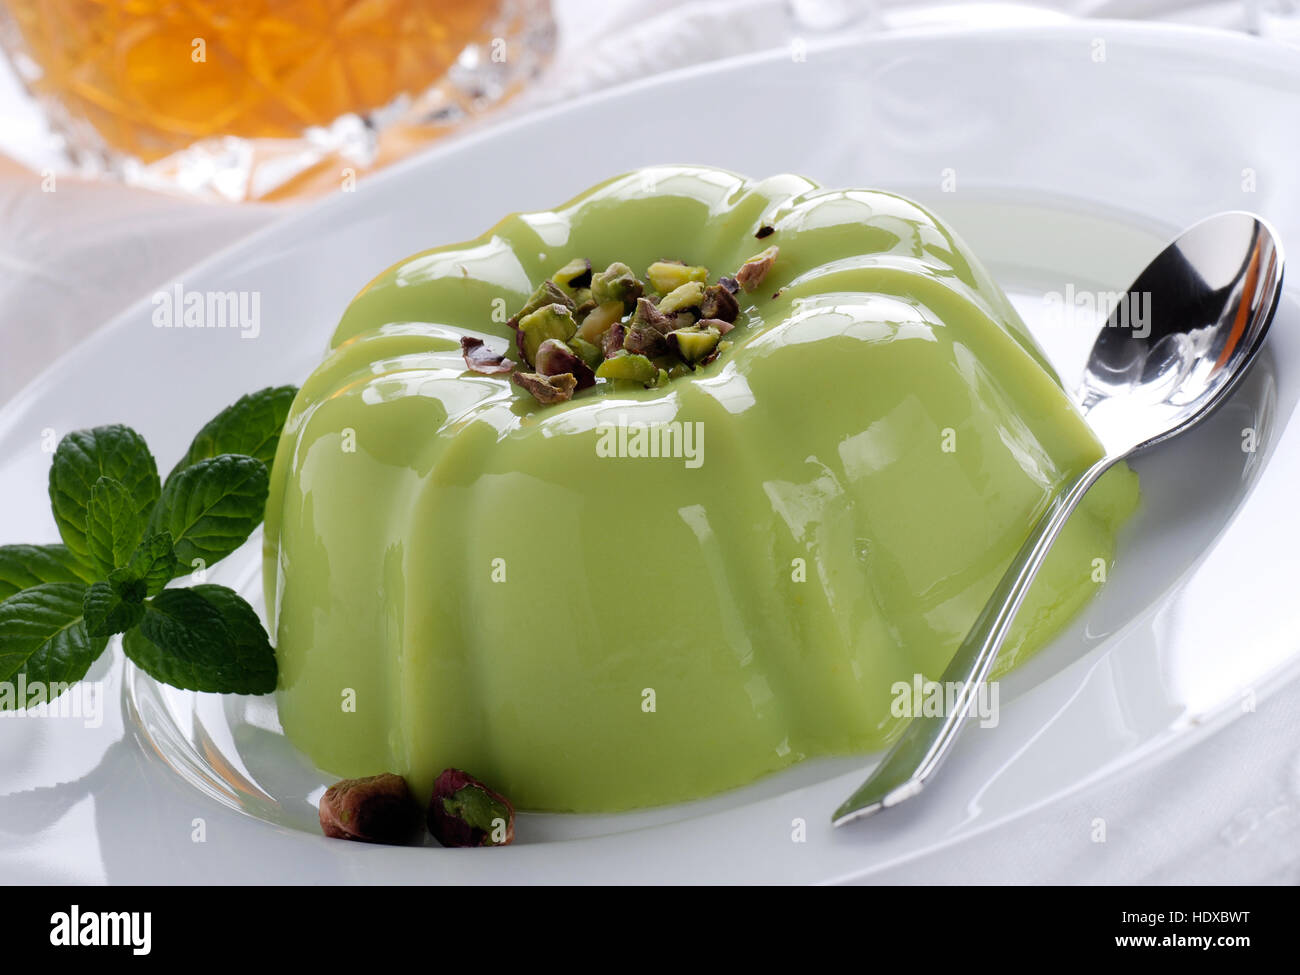 pistachio pudding on white plate - Stock Image